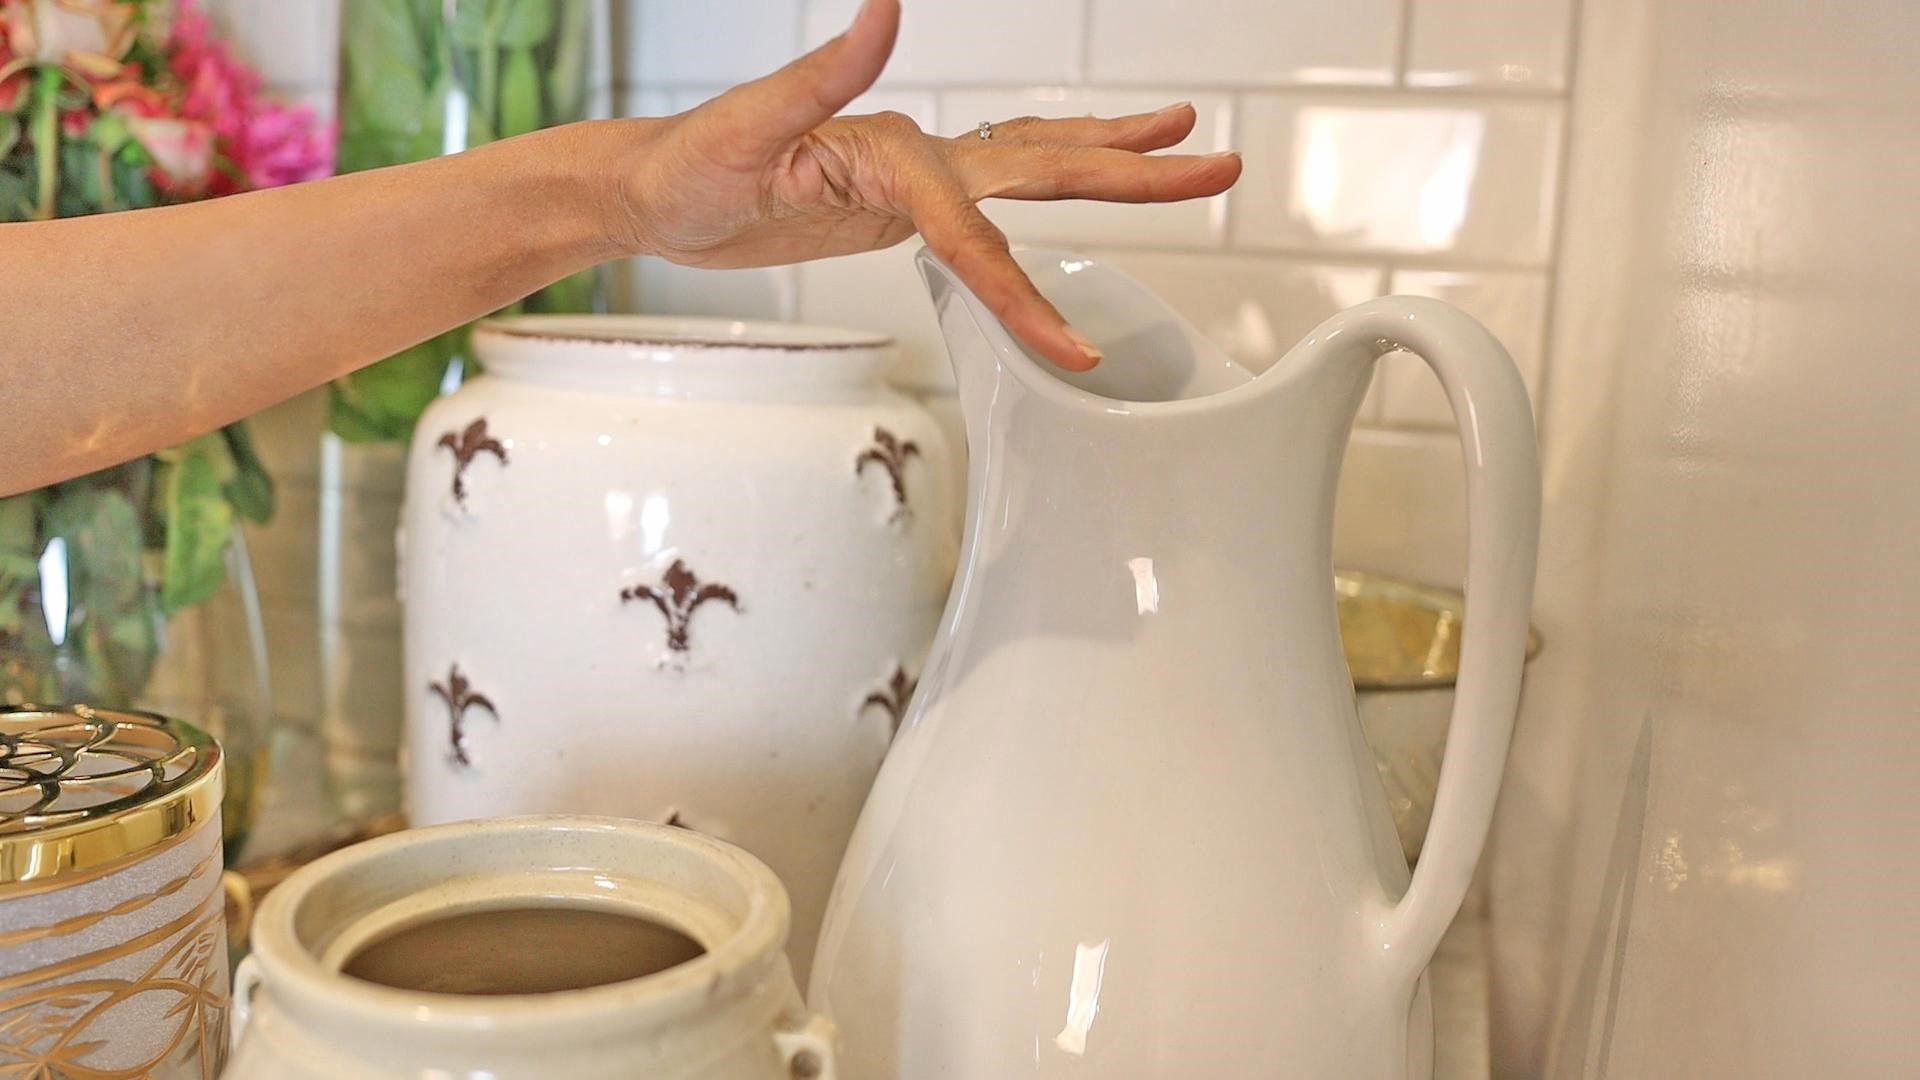 Amitha pointing to the wide mouth of a white ironstone pitcher